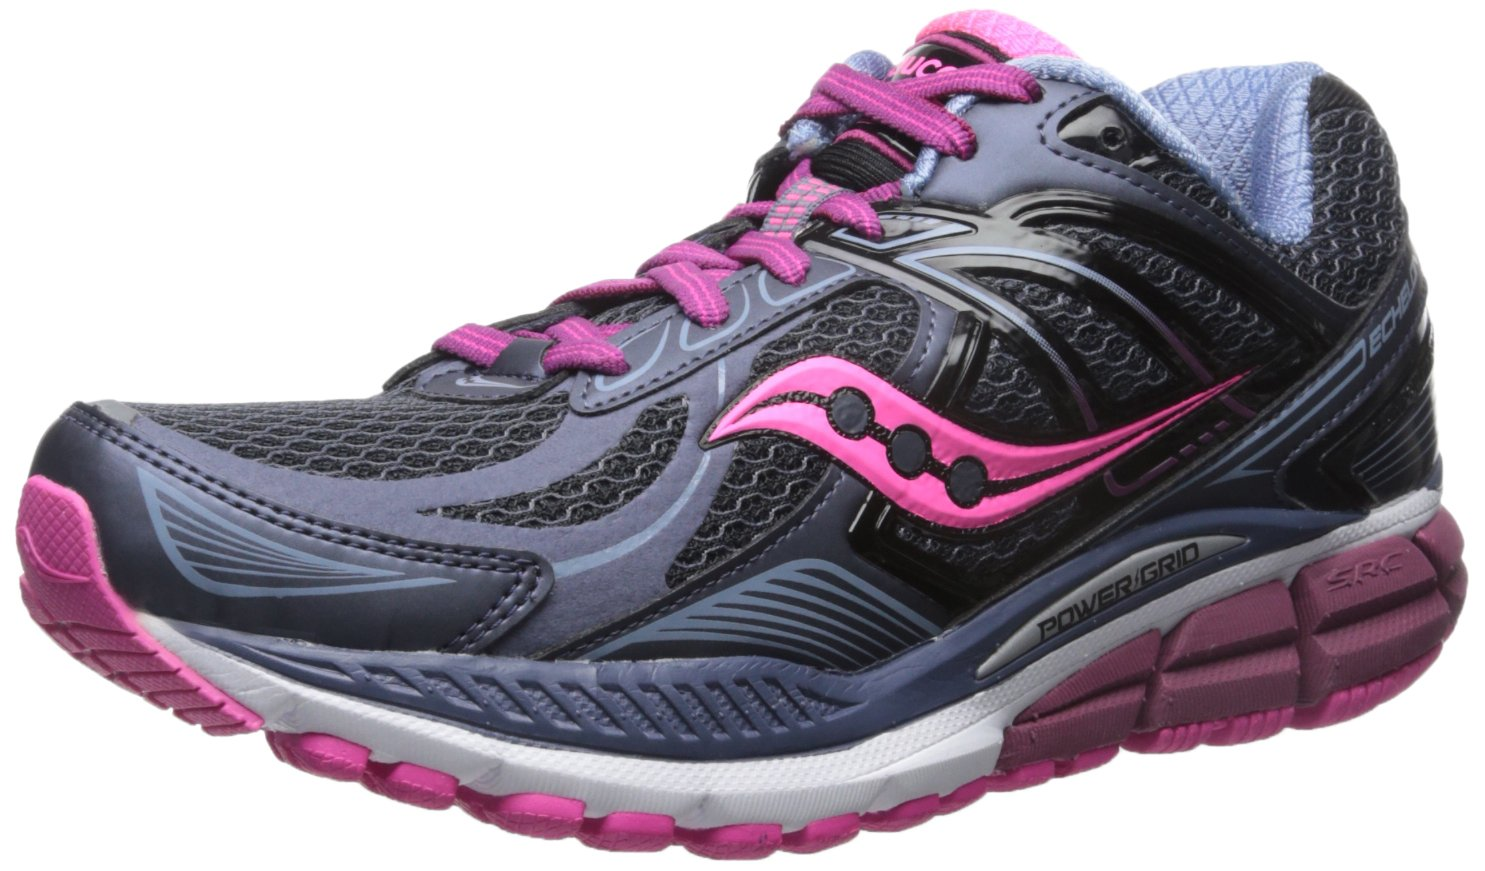 Saucony Women's Echelon 5 Running Shoe